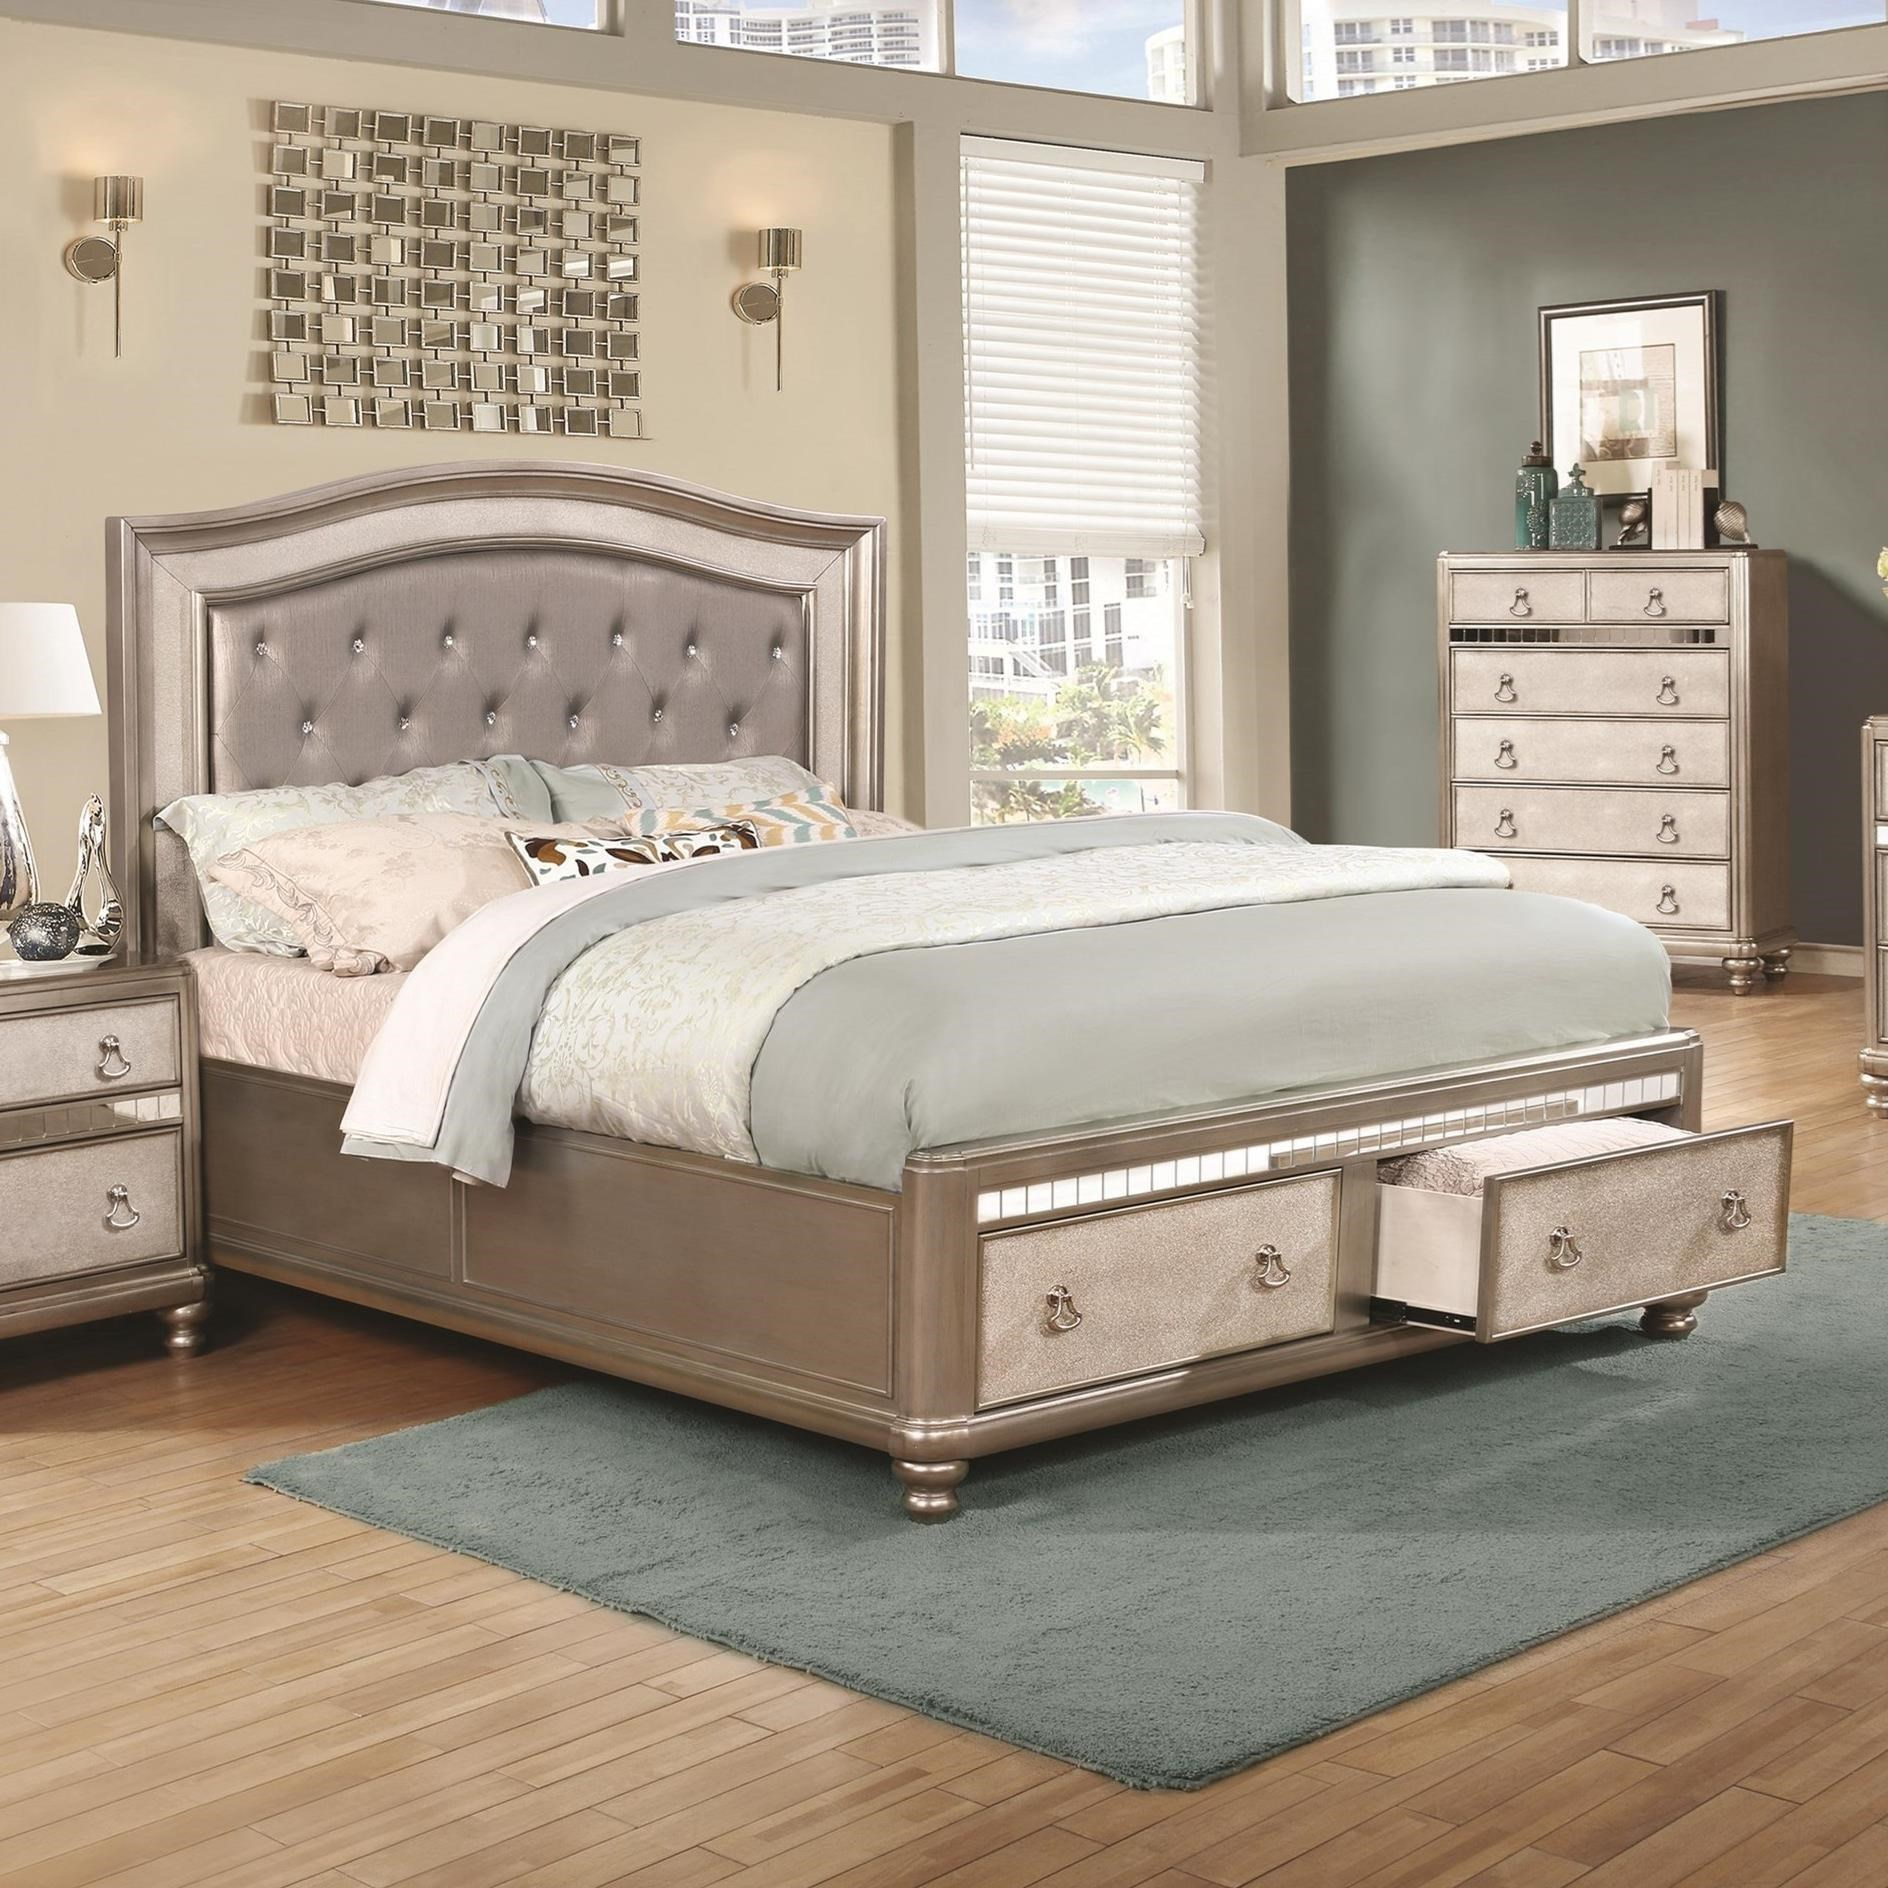 Coaster Bling Game Upholstered Queen Bed With Storage